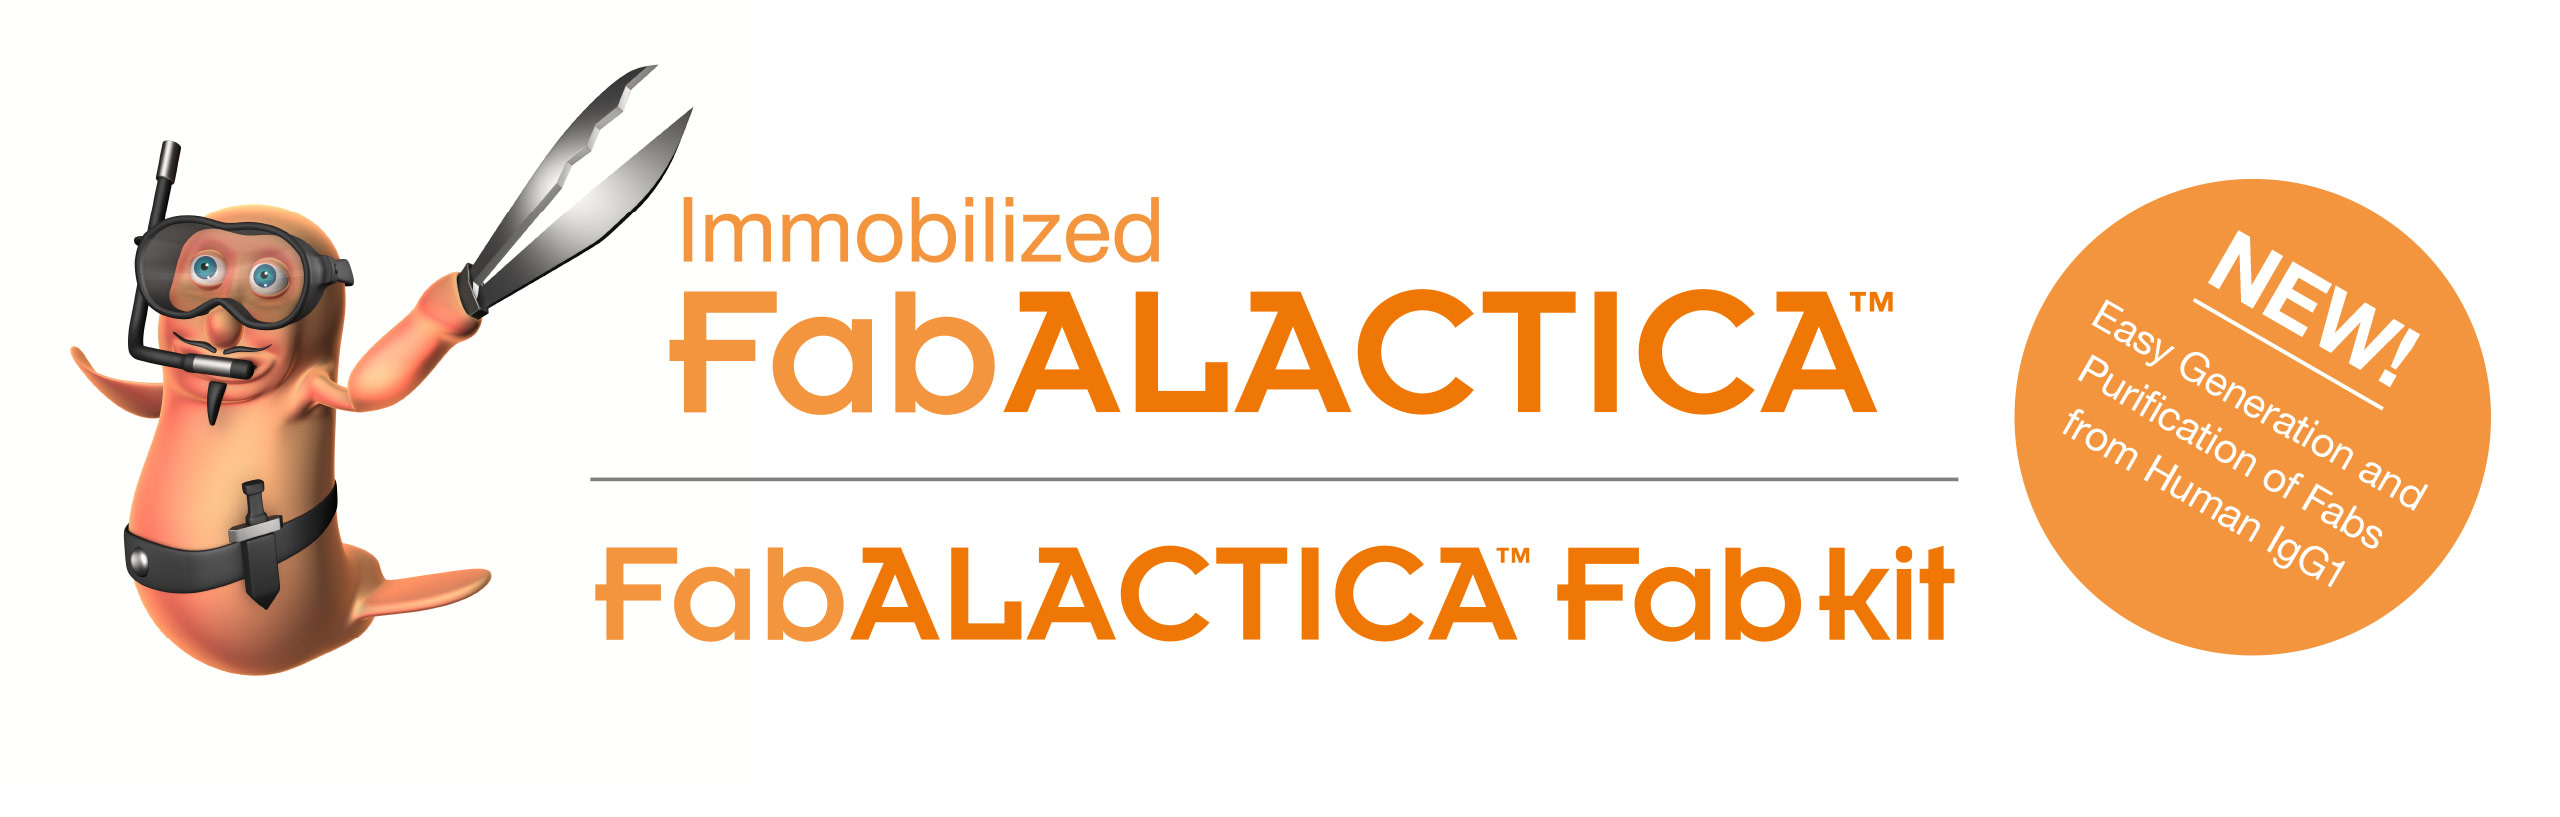 Immobilized_FabALACTICA_Banner_2560x817px